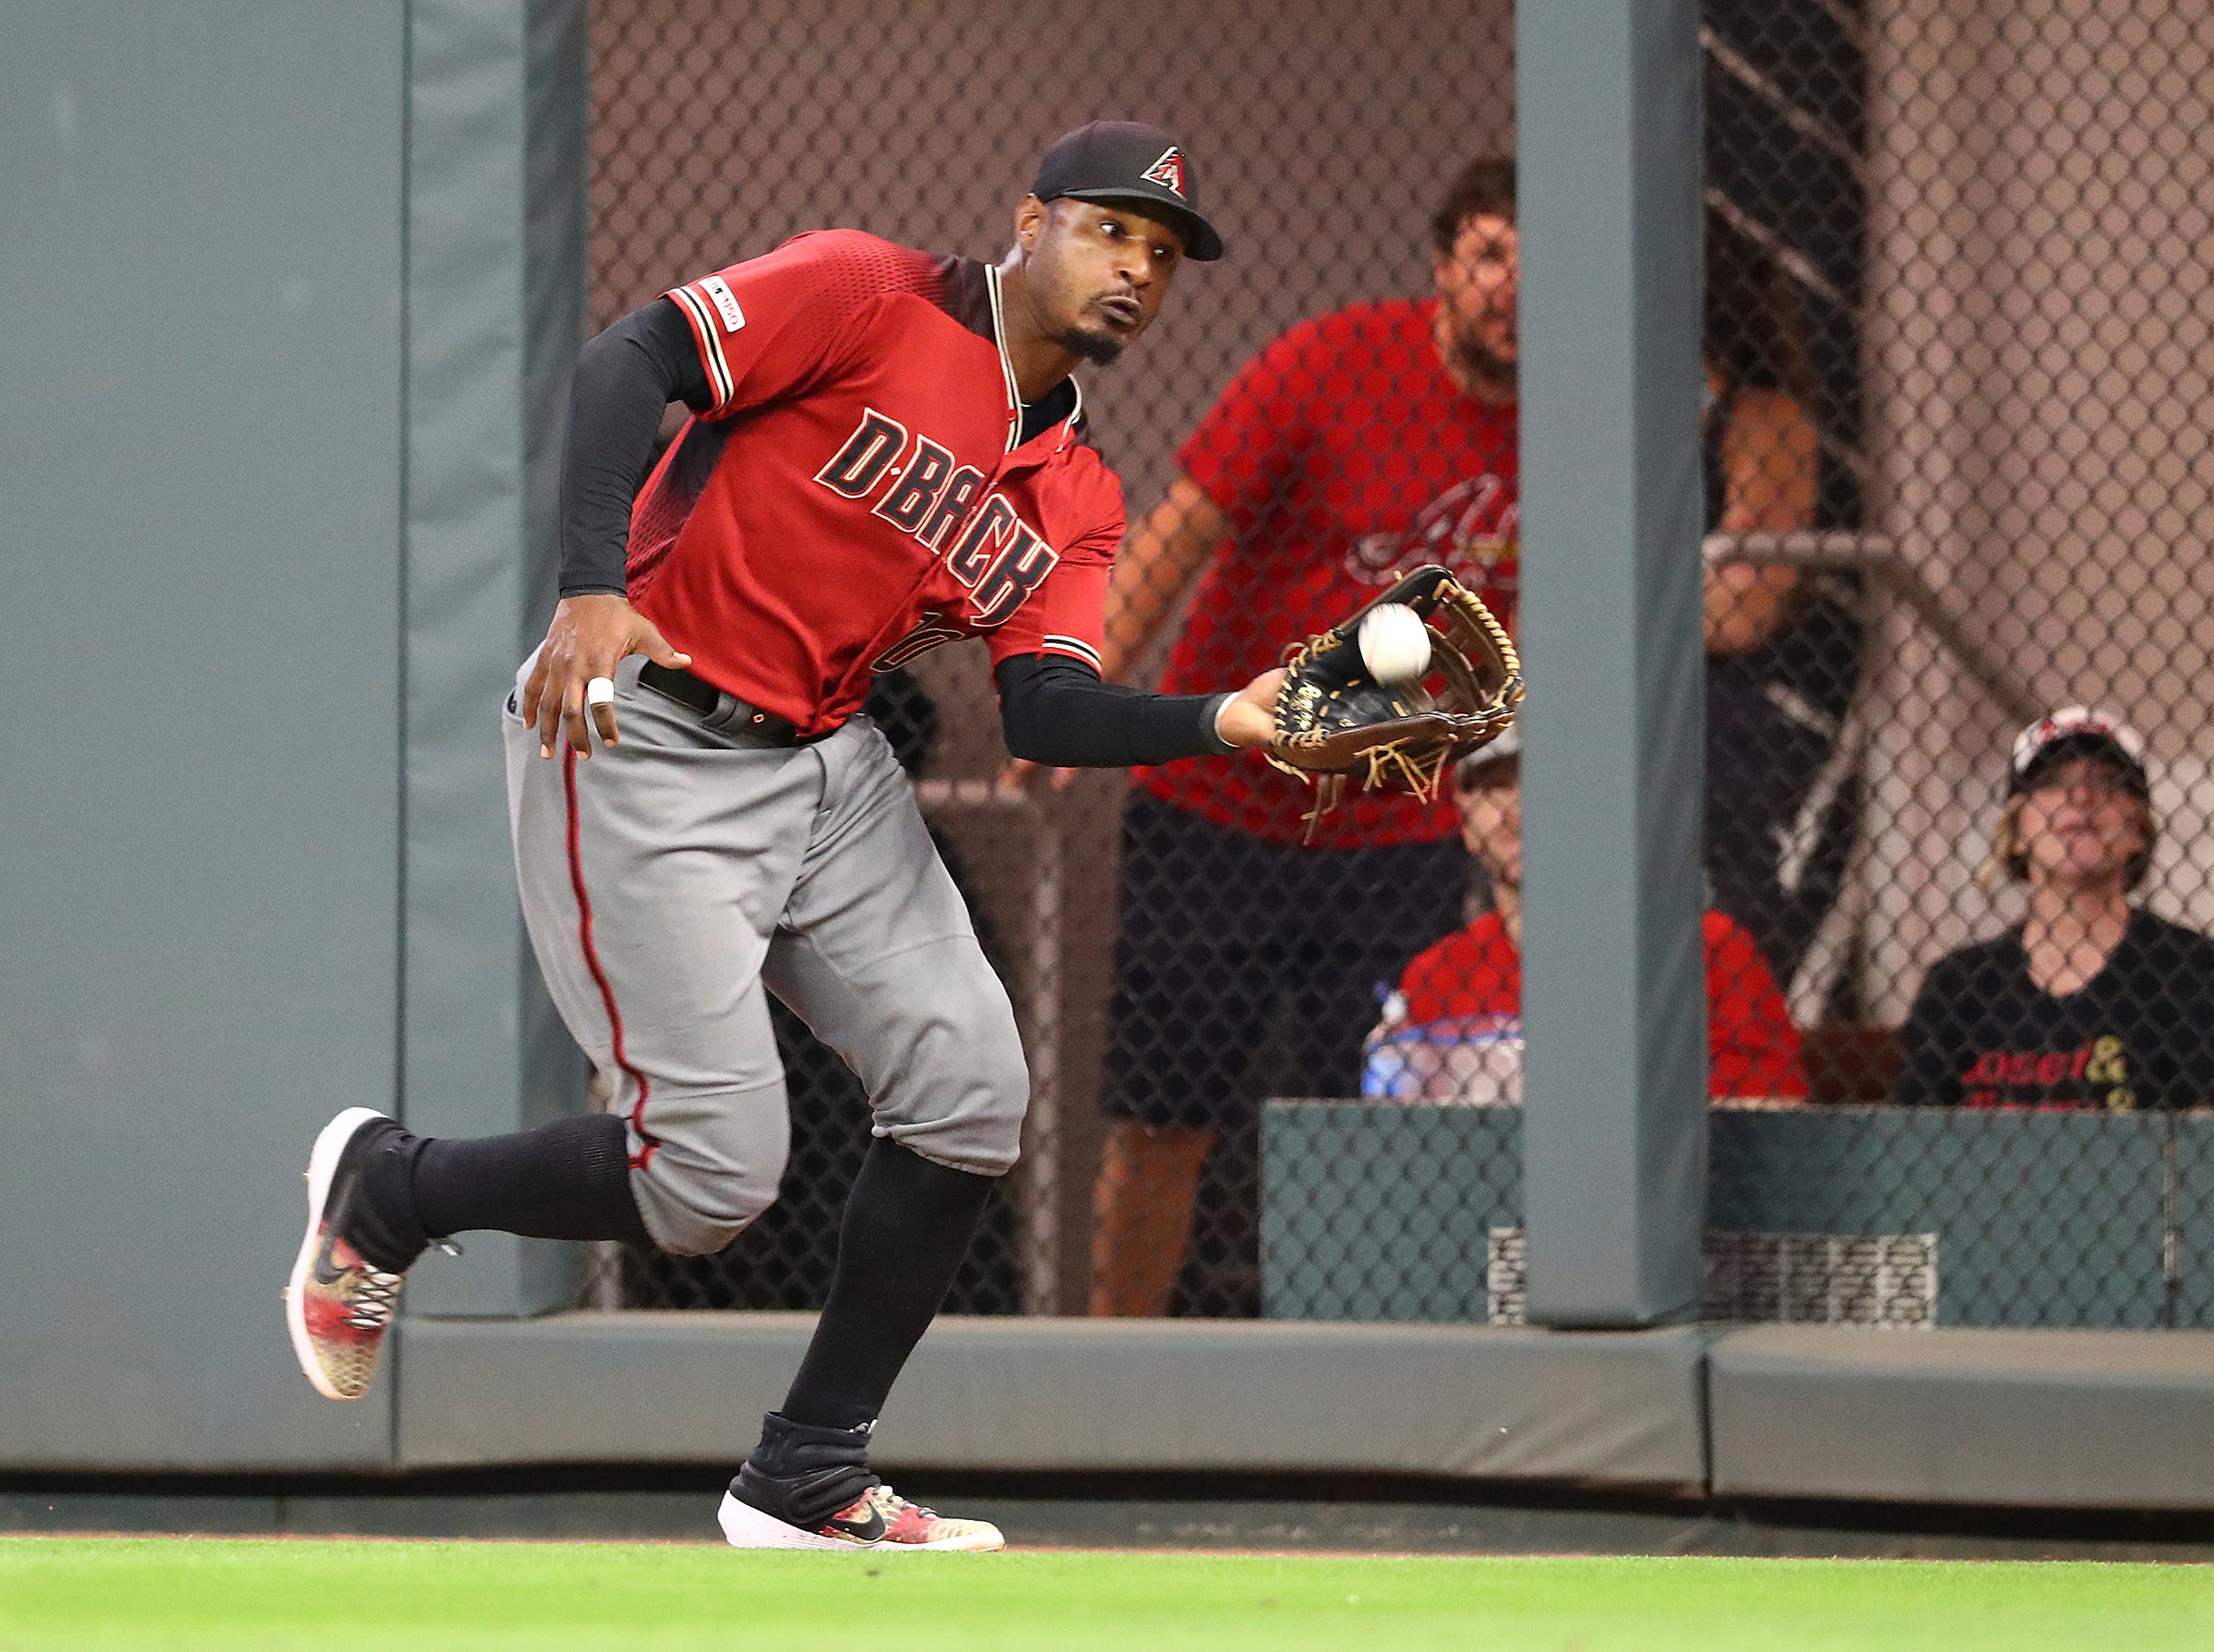 Arizona Diamondbacks right fielder Adam Jones runs down a long fly ball by Atlanta Braves' Dansby Swanson to end the eighth inning of a baseball game Wednesday, April 17, 2019, in Atlanta. (Curtis Compton/Atlanta Journal-Constitution via AP)